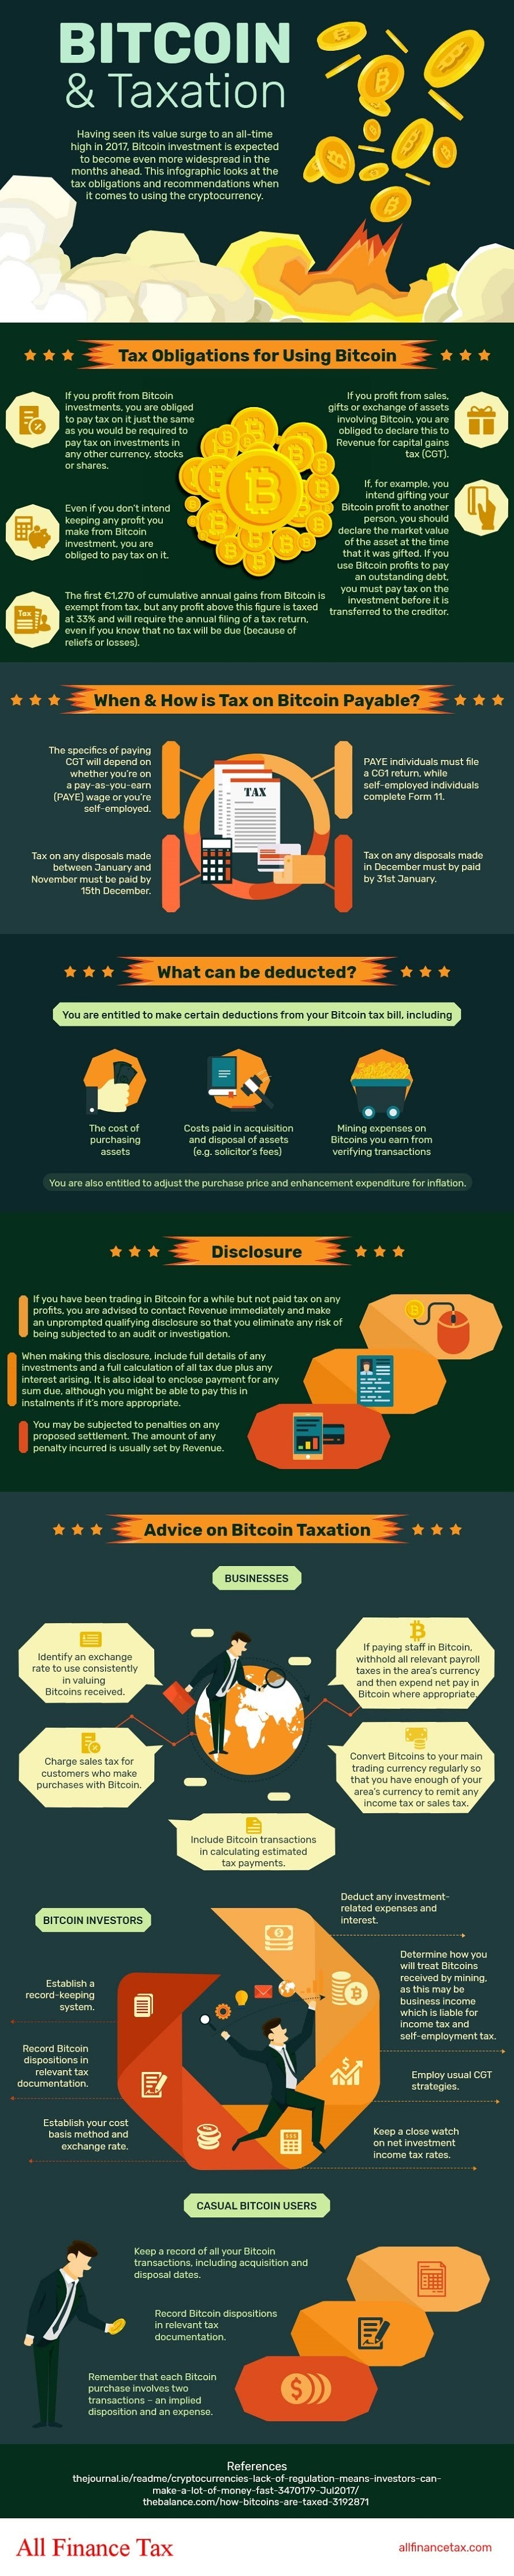 Bitcoin: Guide to Taxation - Infographic